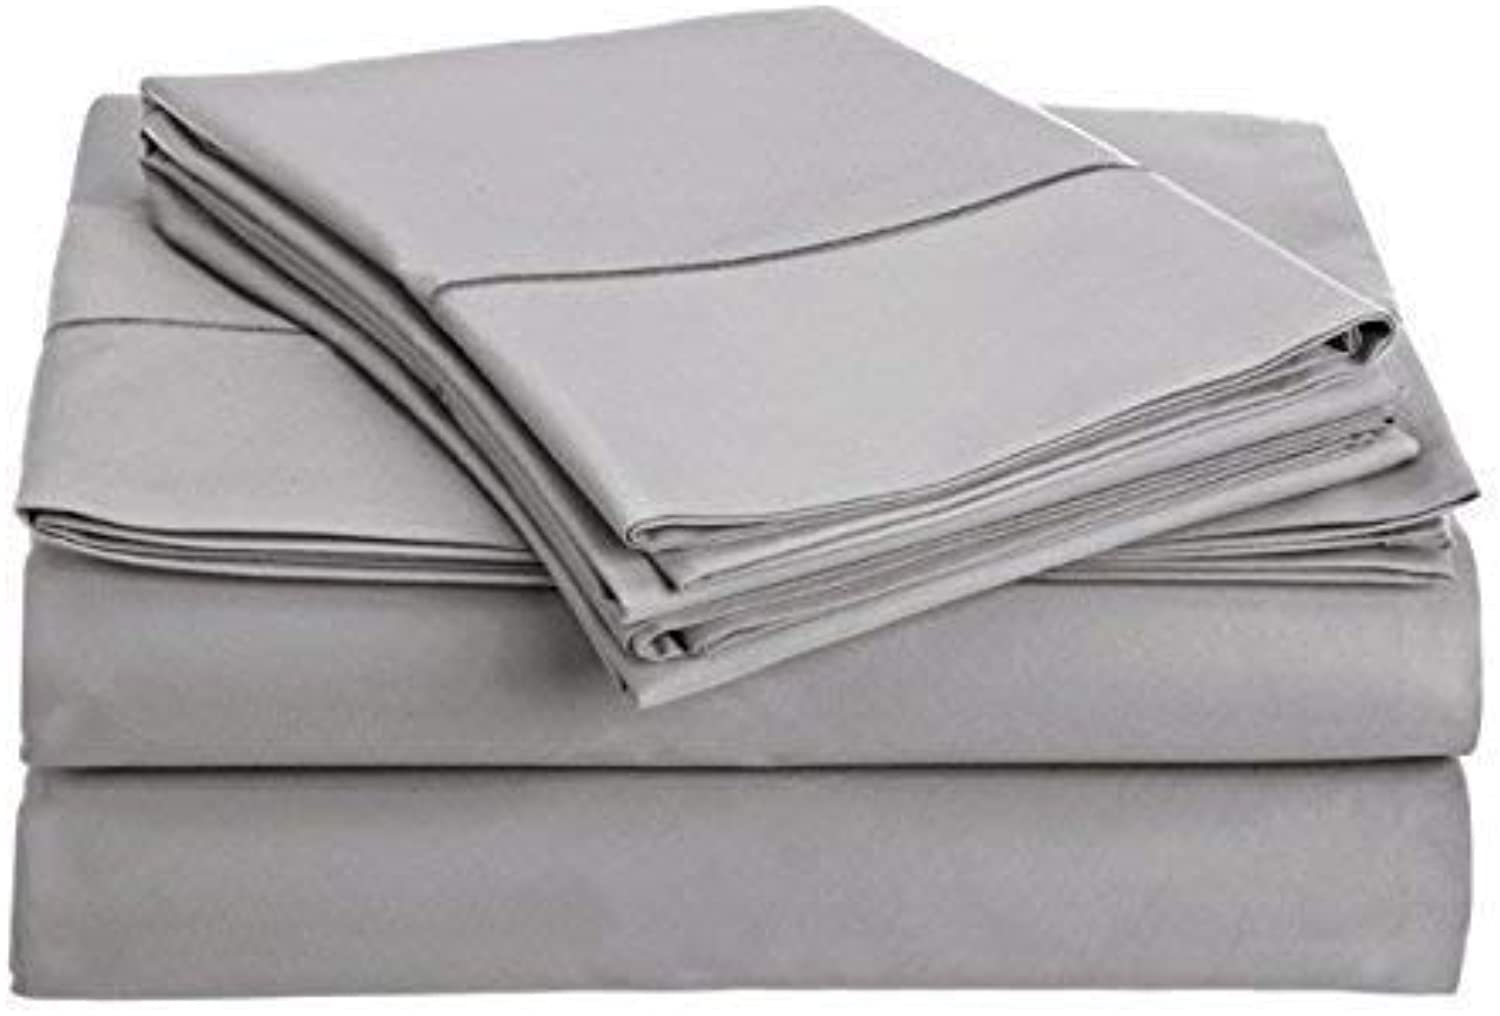 800 Thread Count 100% Long Staple Egyptian Cotton Sheet Set, (Marrow stitch Classic Look Hem )Queen Sheets, Luxury Bedding, Queen 4 Piece Set, Smooth SatIn Weave,Silver, by Audley Home